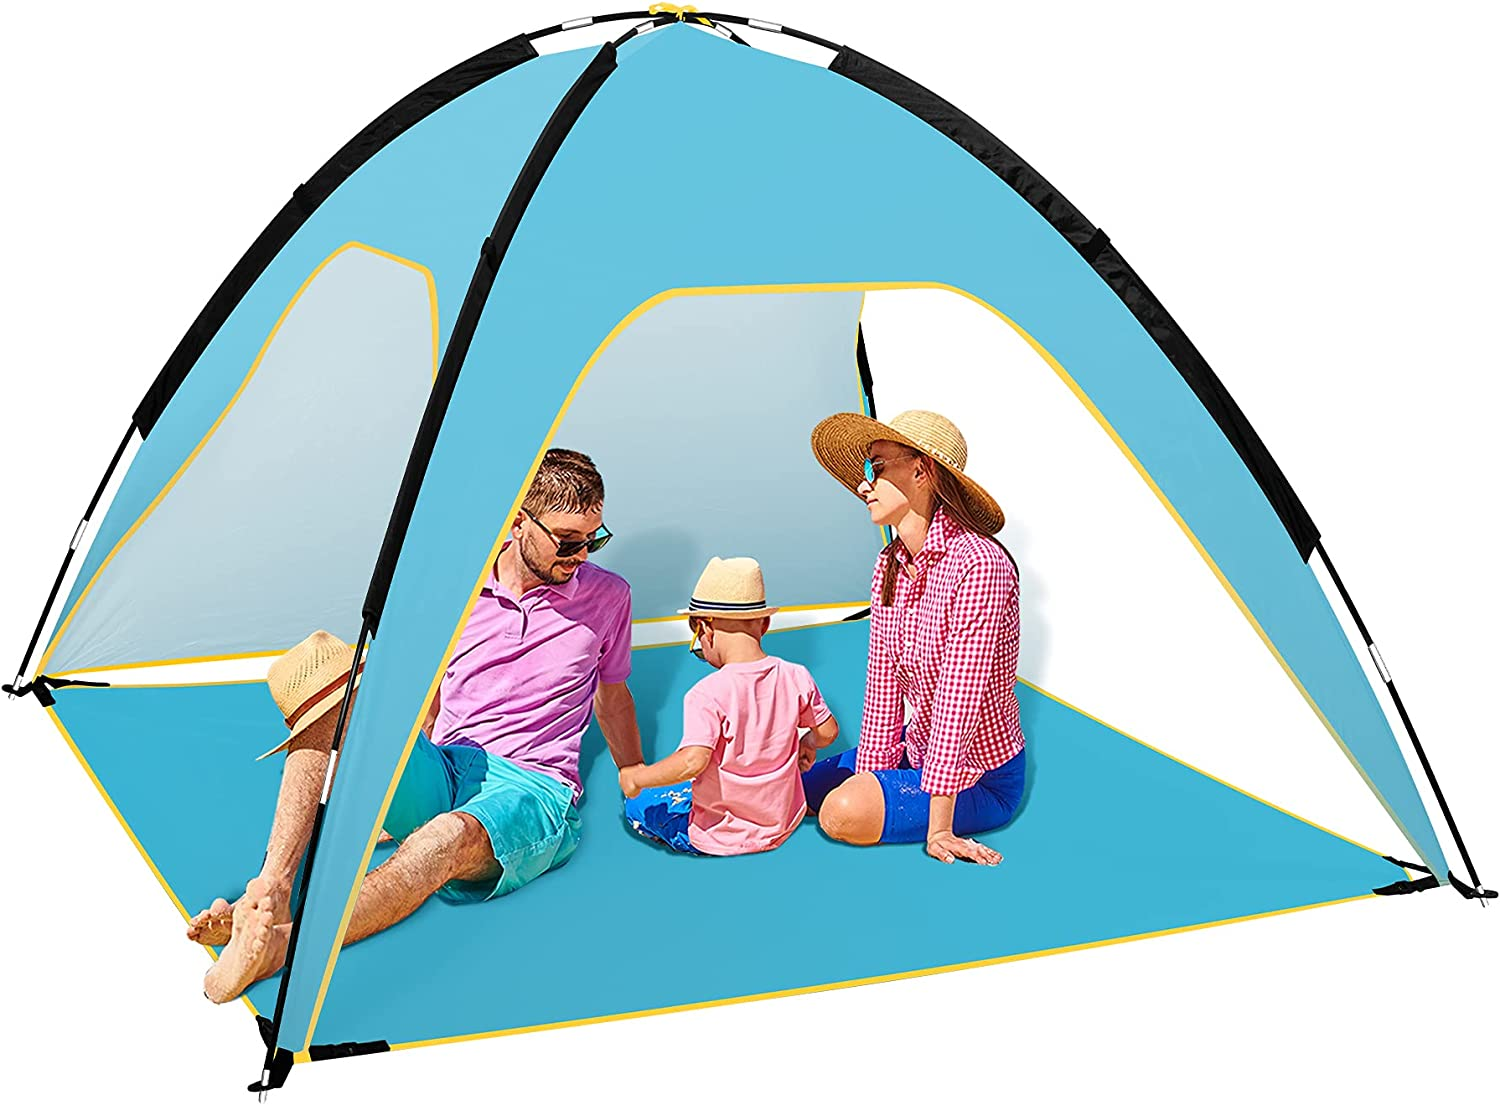 Fltom Beach Oakland Limited Special Price Mall Tent Portable Sun Shelter 50+ UPF UV Prot for